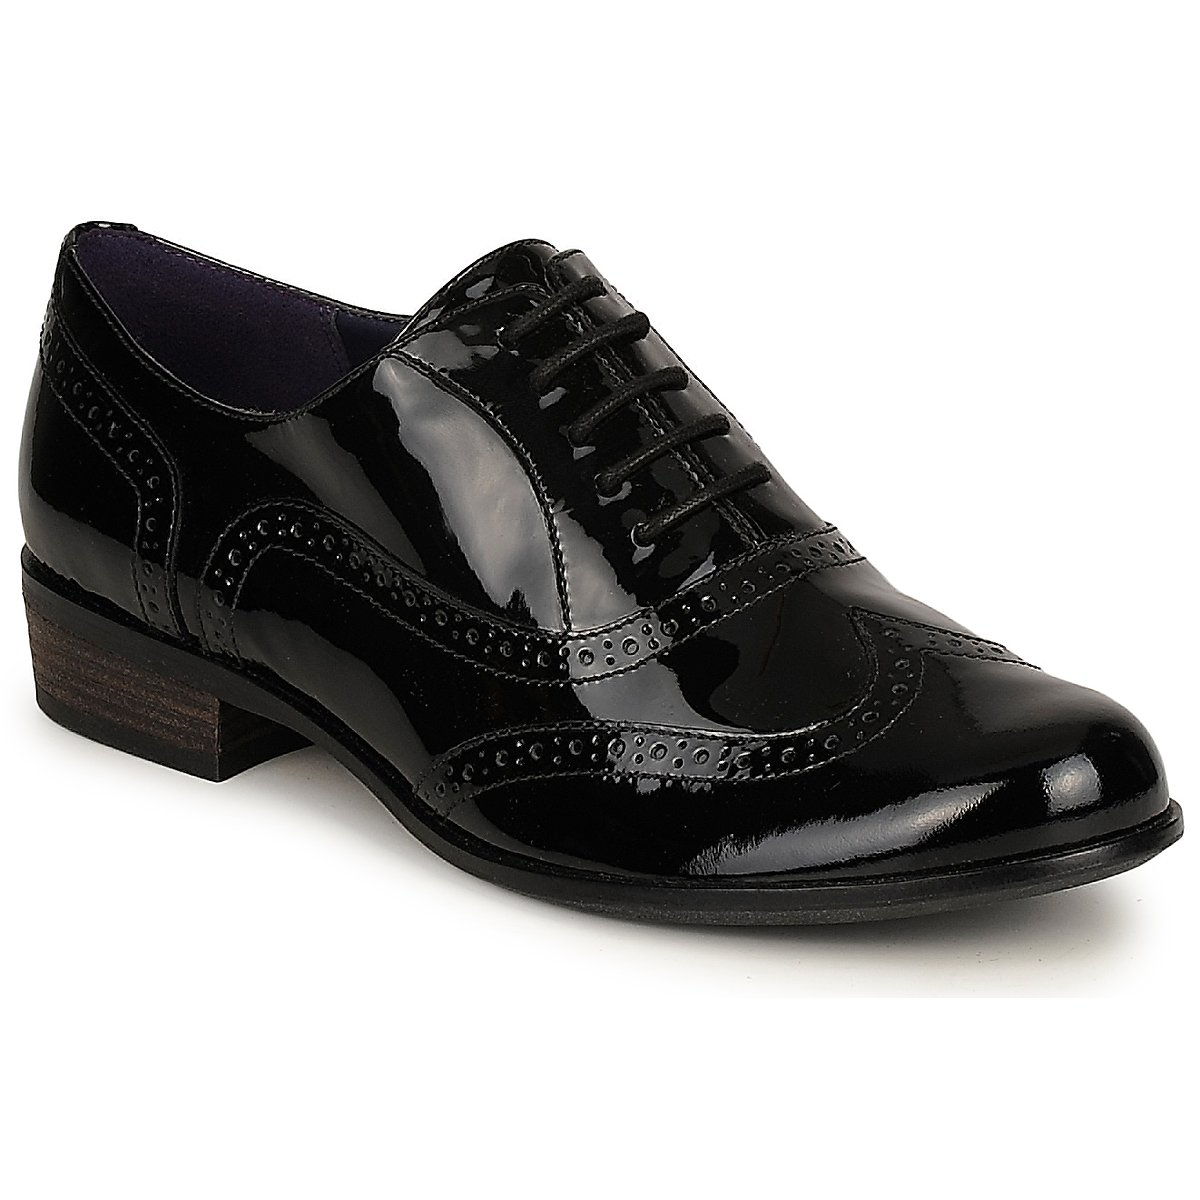 brogues clarks hamble oak black patent free delivery with spartoo uk shoes women. Black Bedroom Furniture Sets. Home Design Ideas